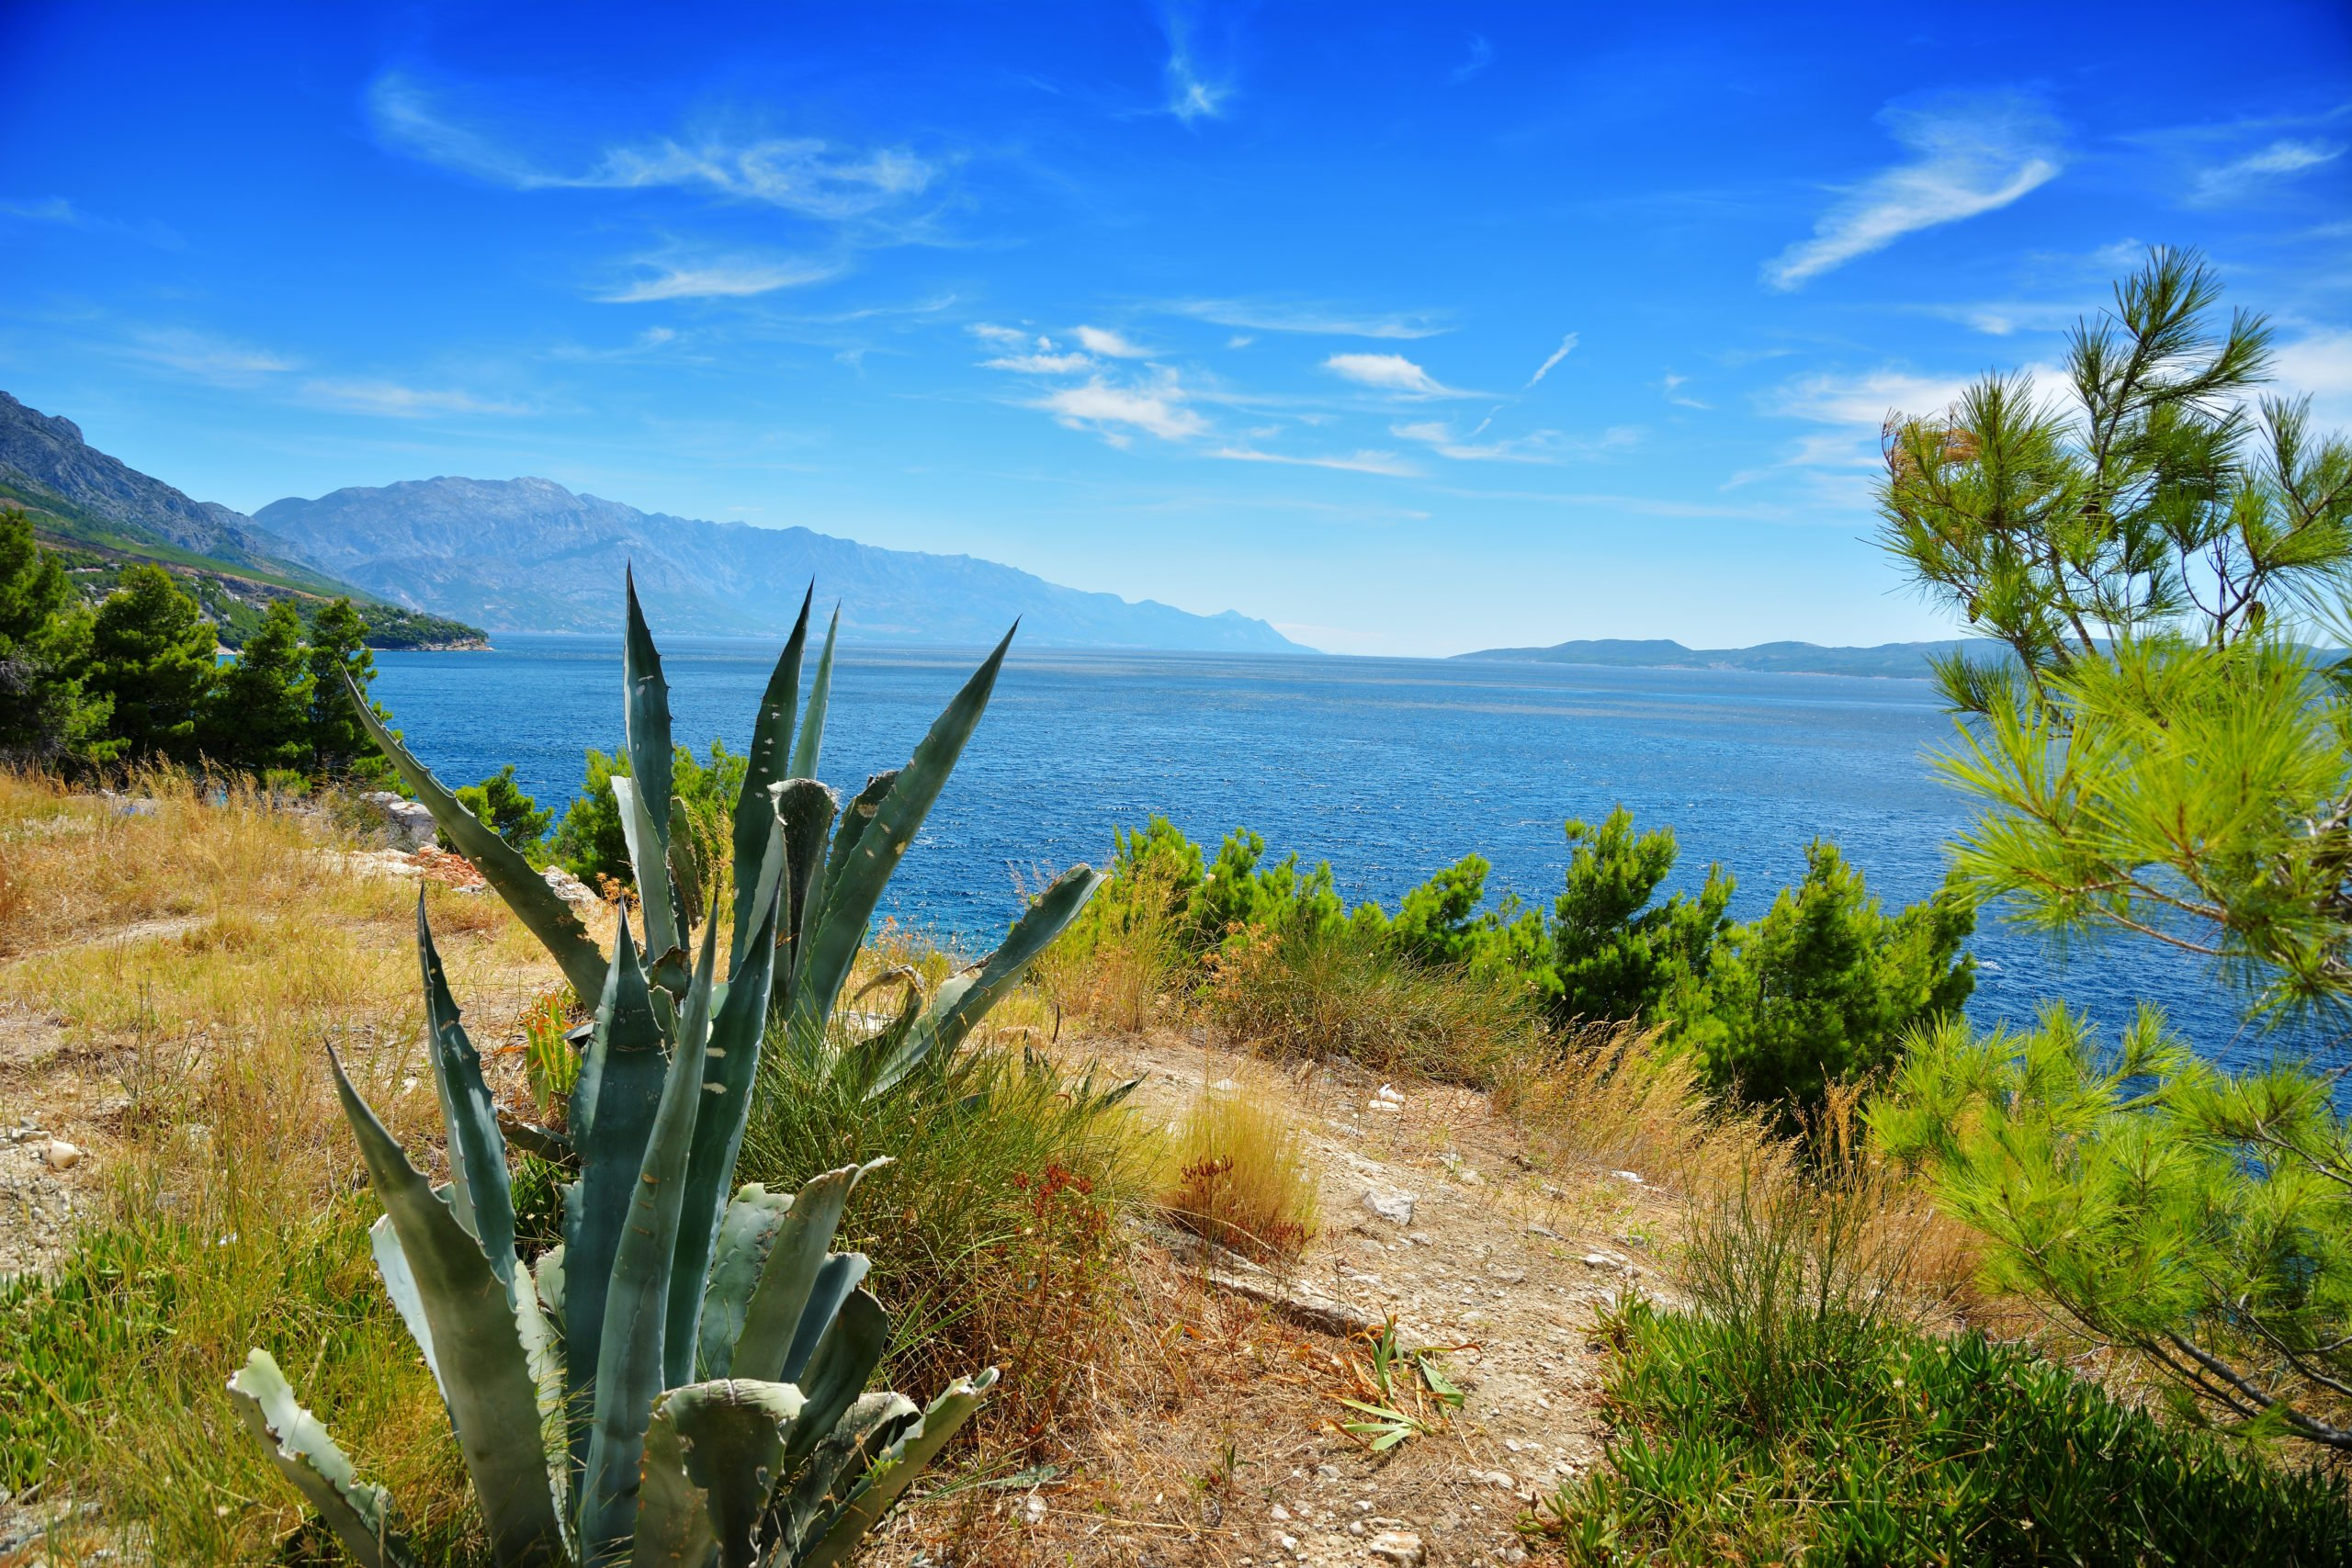 Admire The Marvelous Stops Where You Will Stop And Rest During Bike Trip At The Dubrovnik Riviera